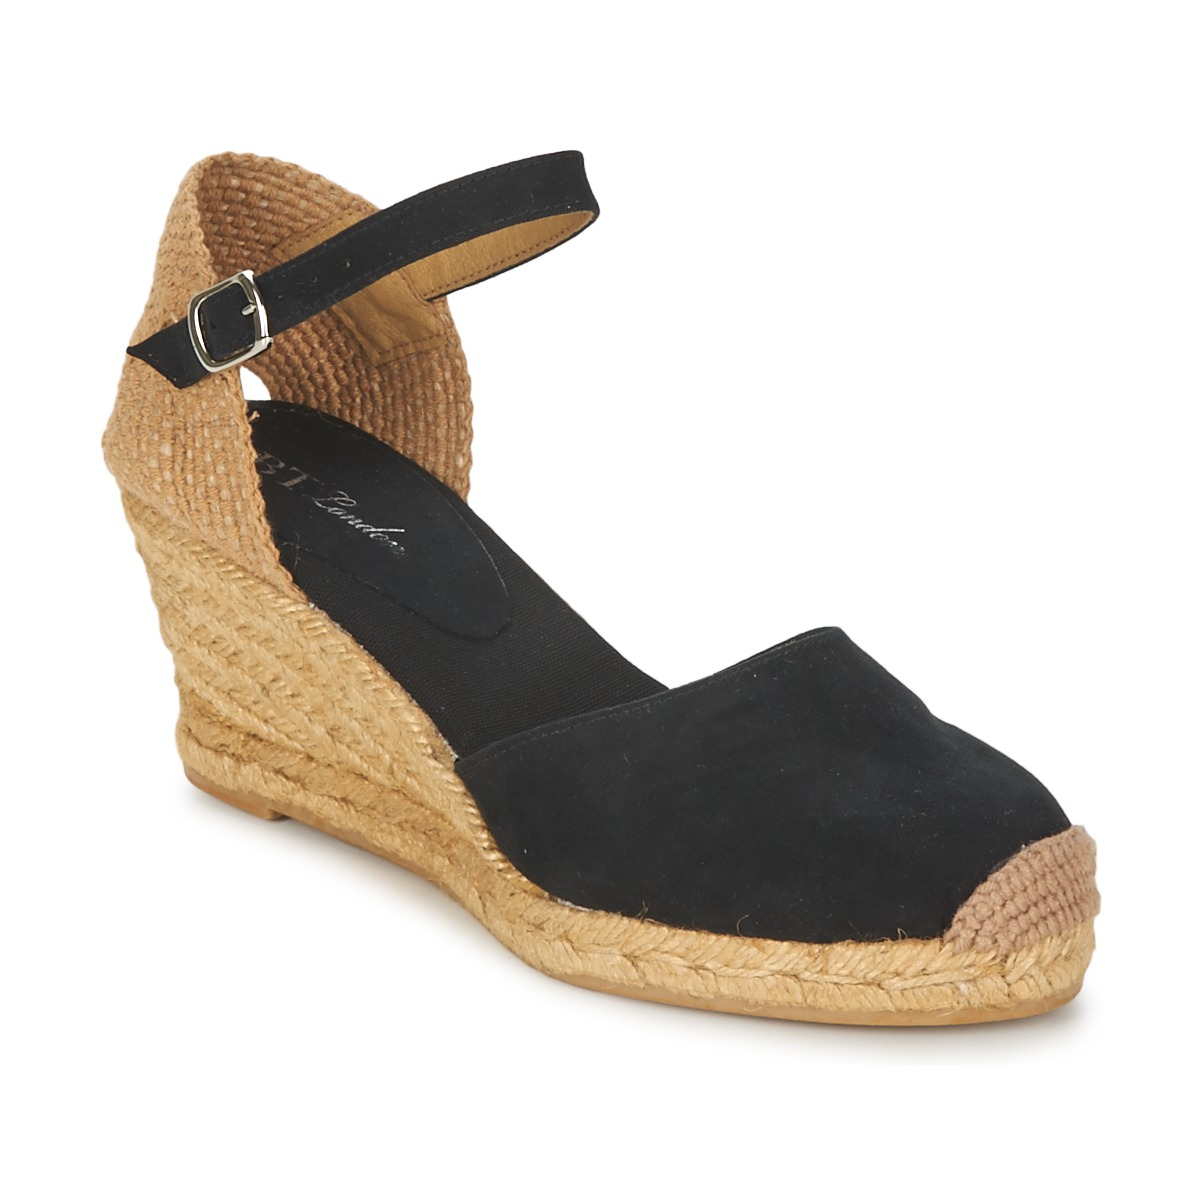 betty london black espadrille